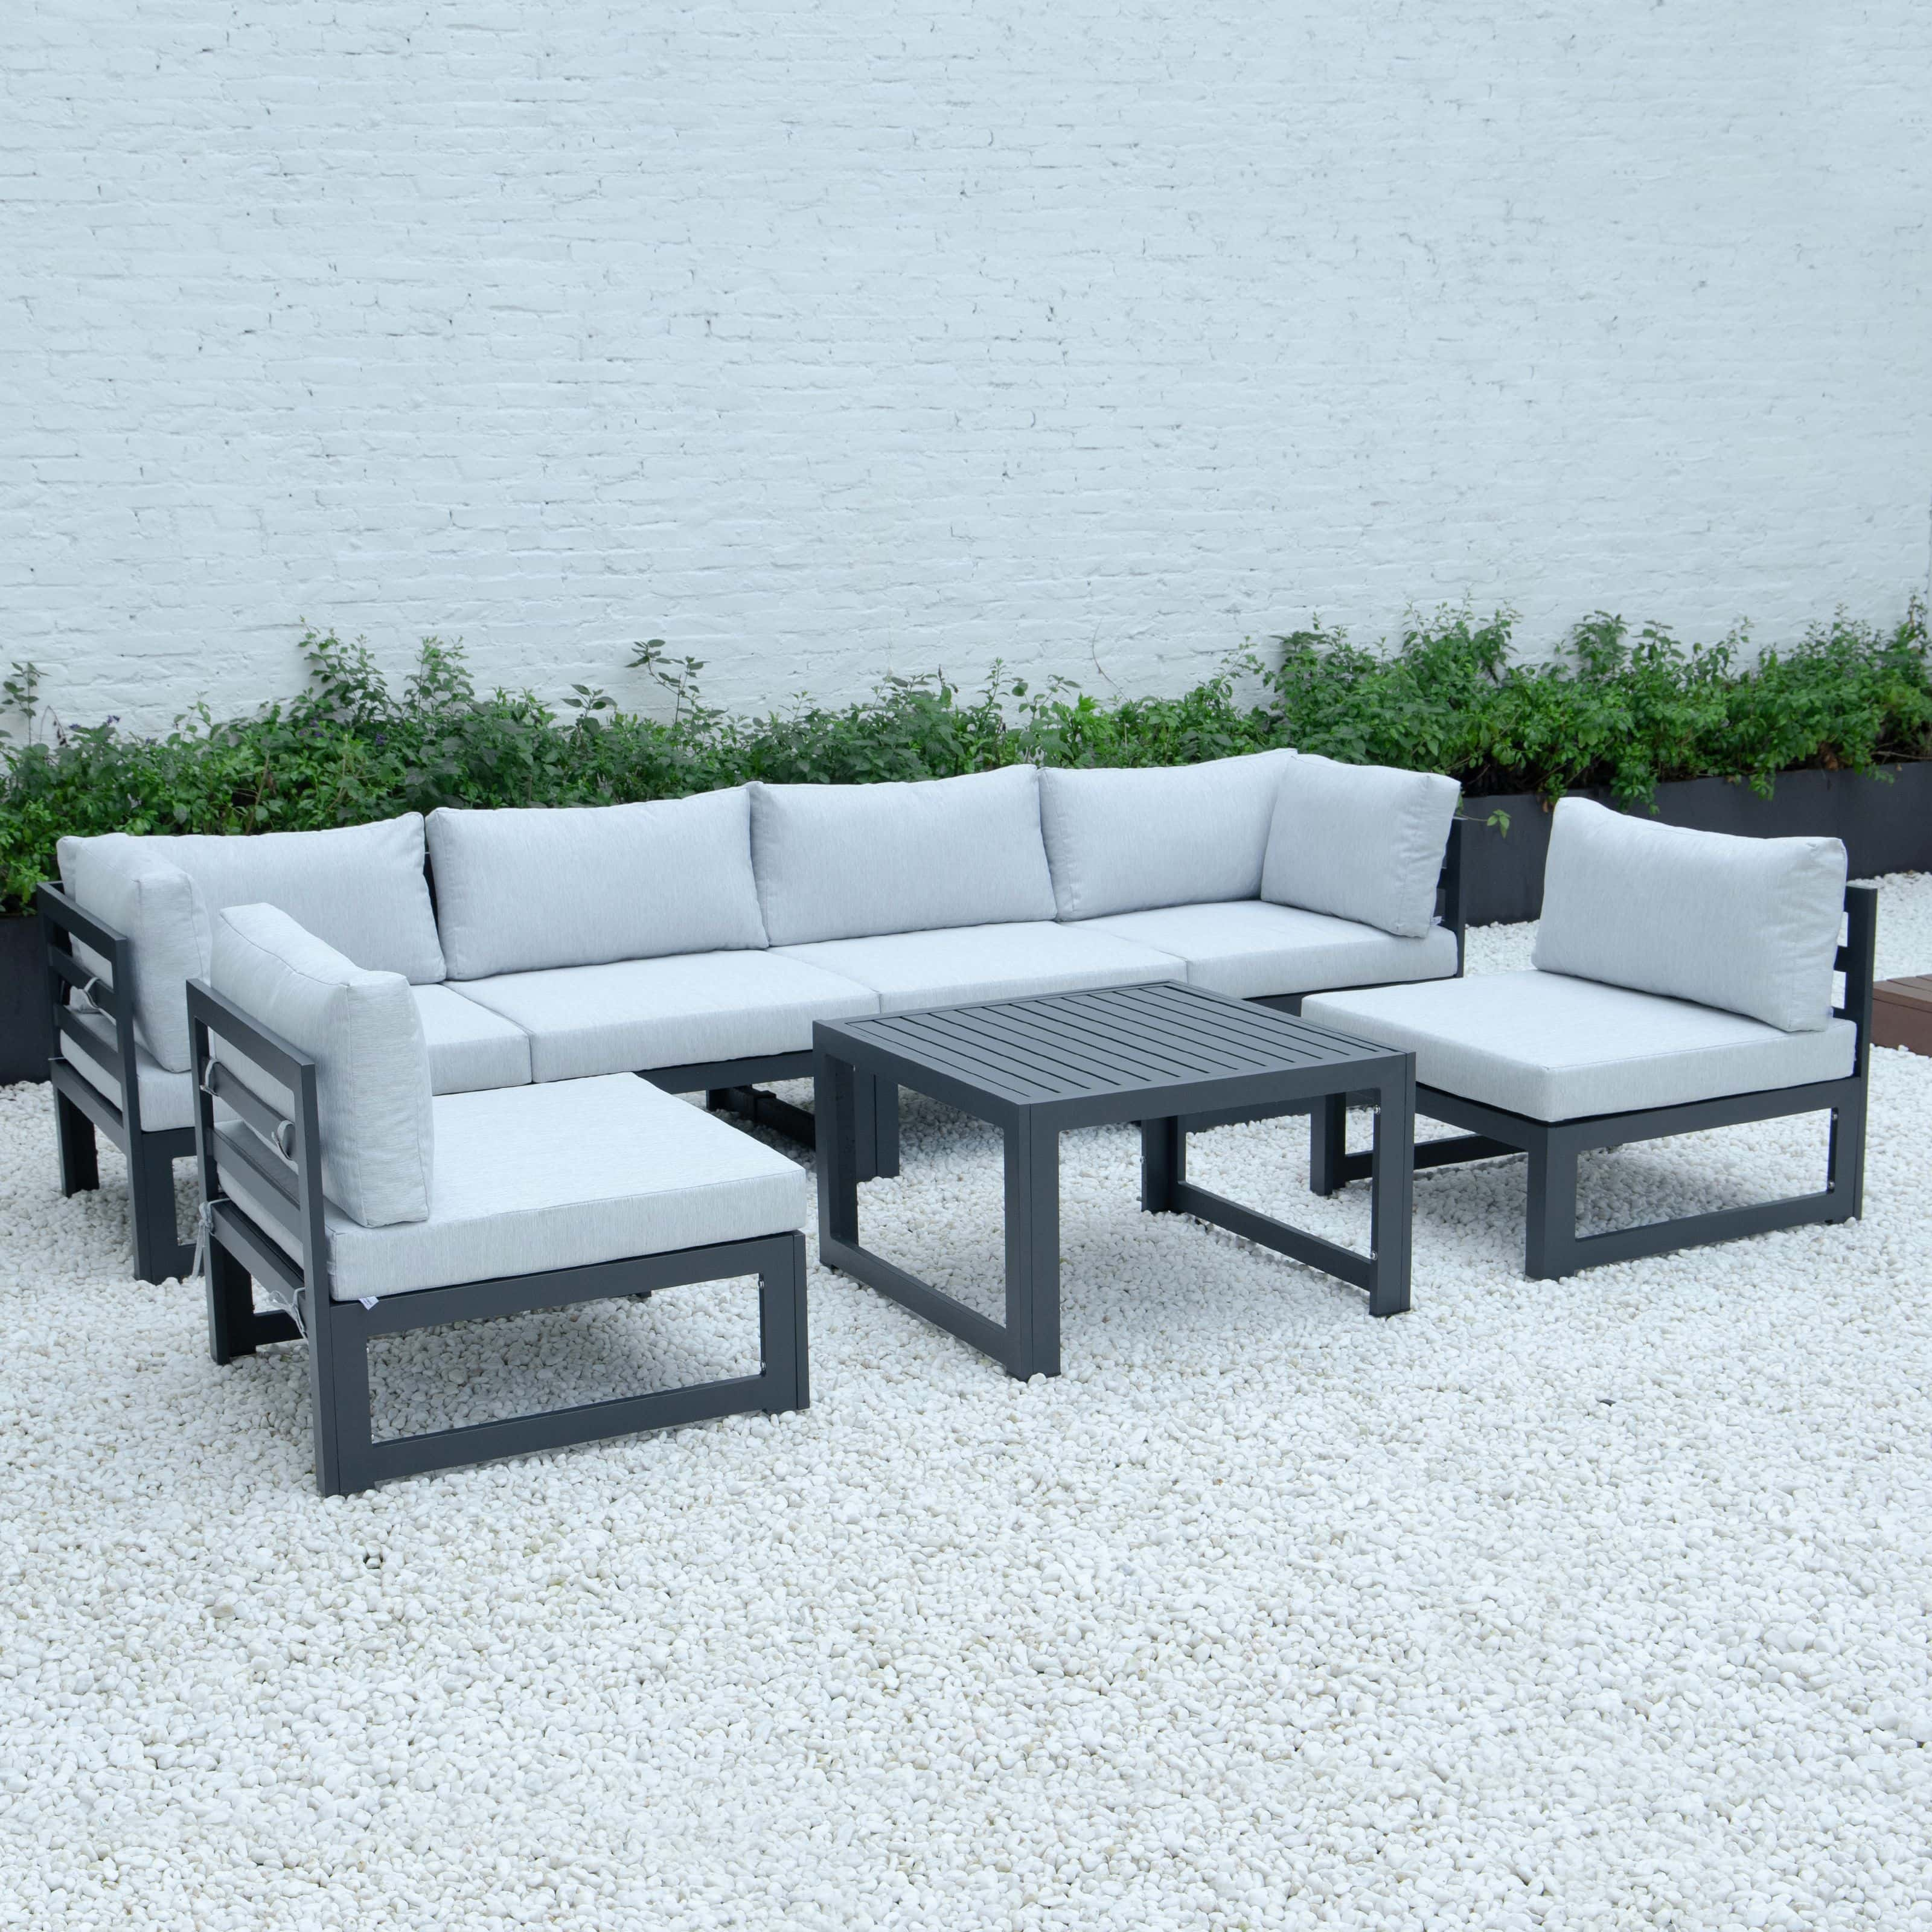 Chelsea 7 Piece Patio Sectional And Coffee Table Set Black Aluminum With Cushions Light Grey By Leisuremod